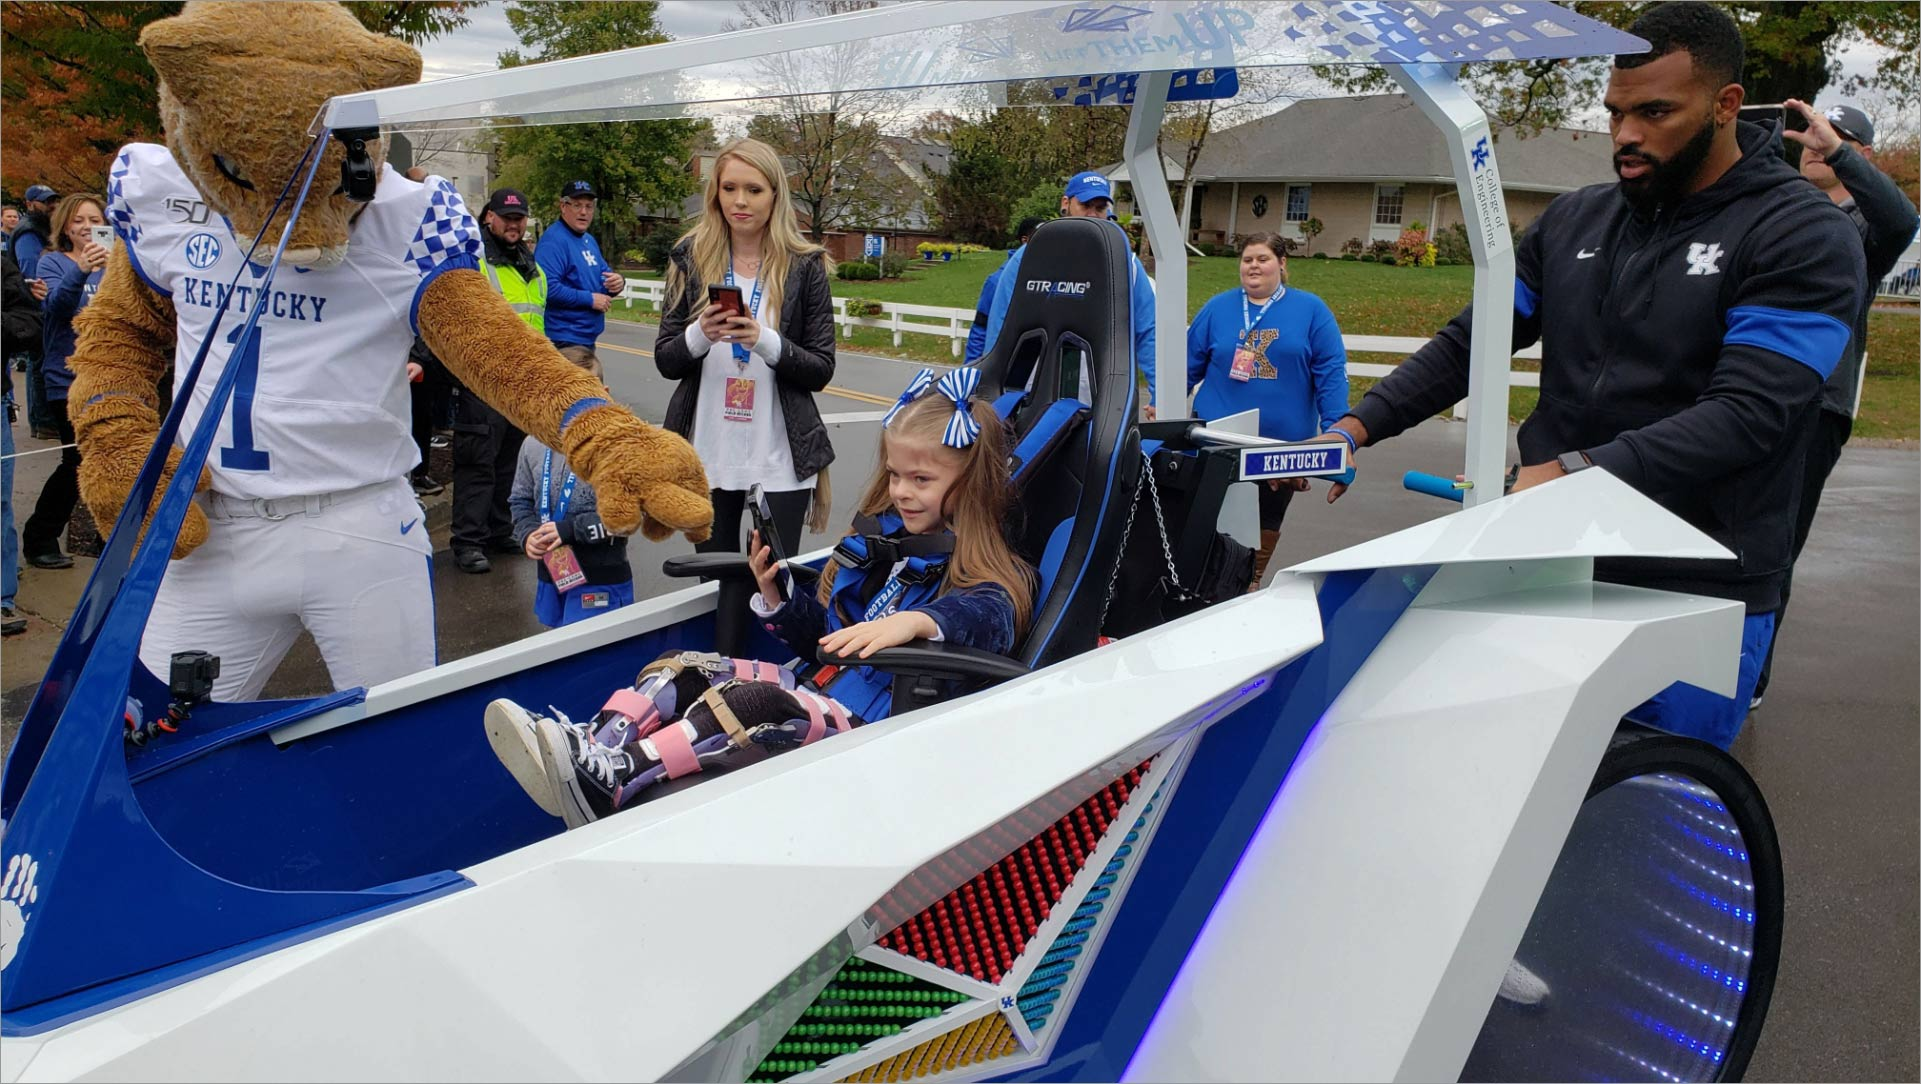 Courtney and the Wildcat mascot surround a little girl in a futuristic-looking blue and white cart. The girl has her hair in pigtails and has pink and purple leg braces.